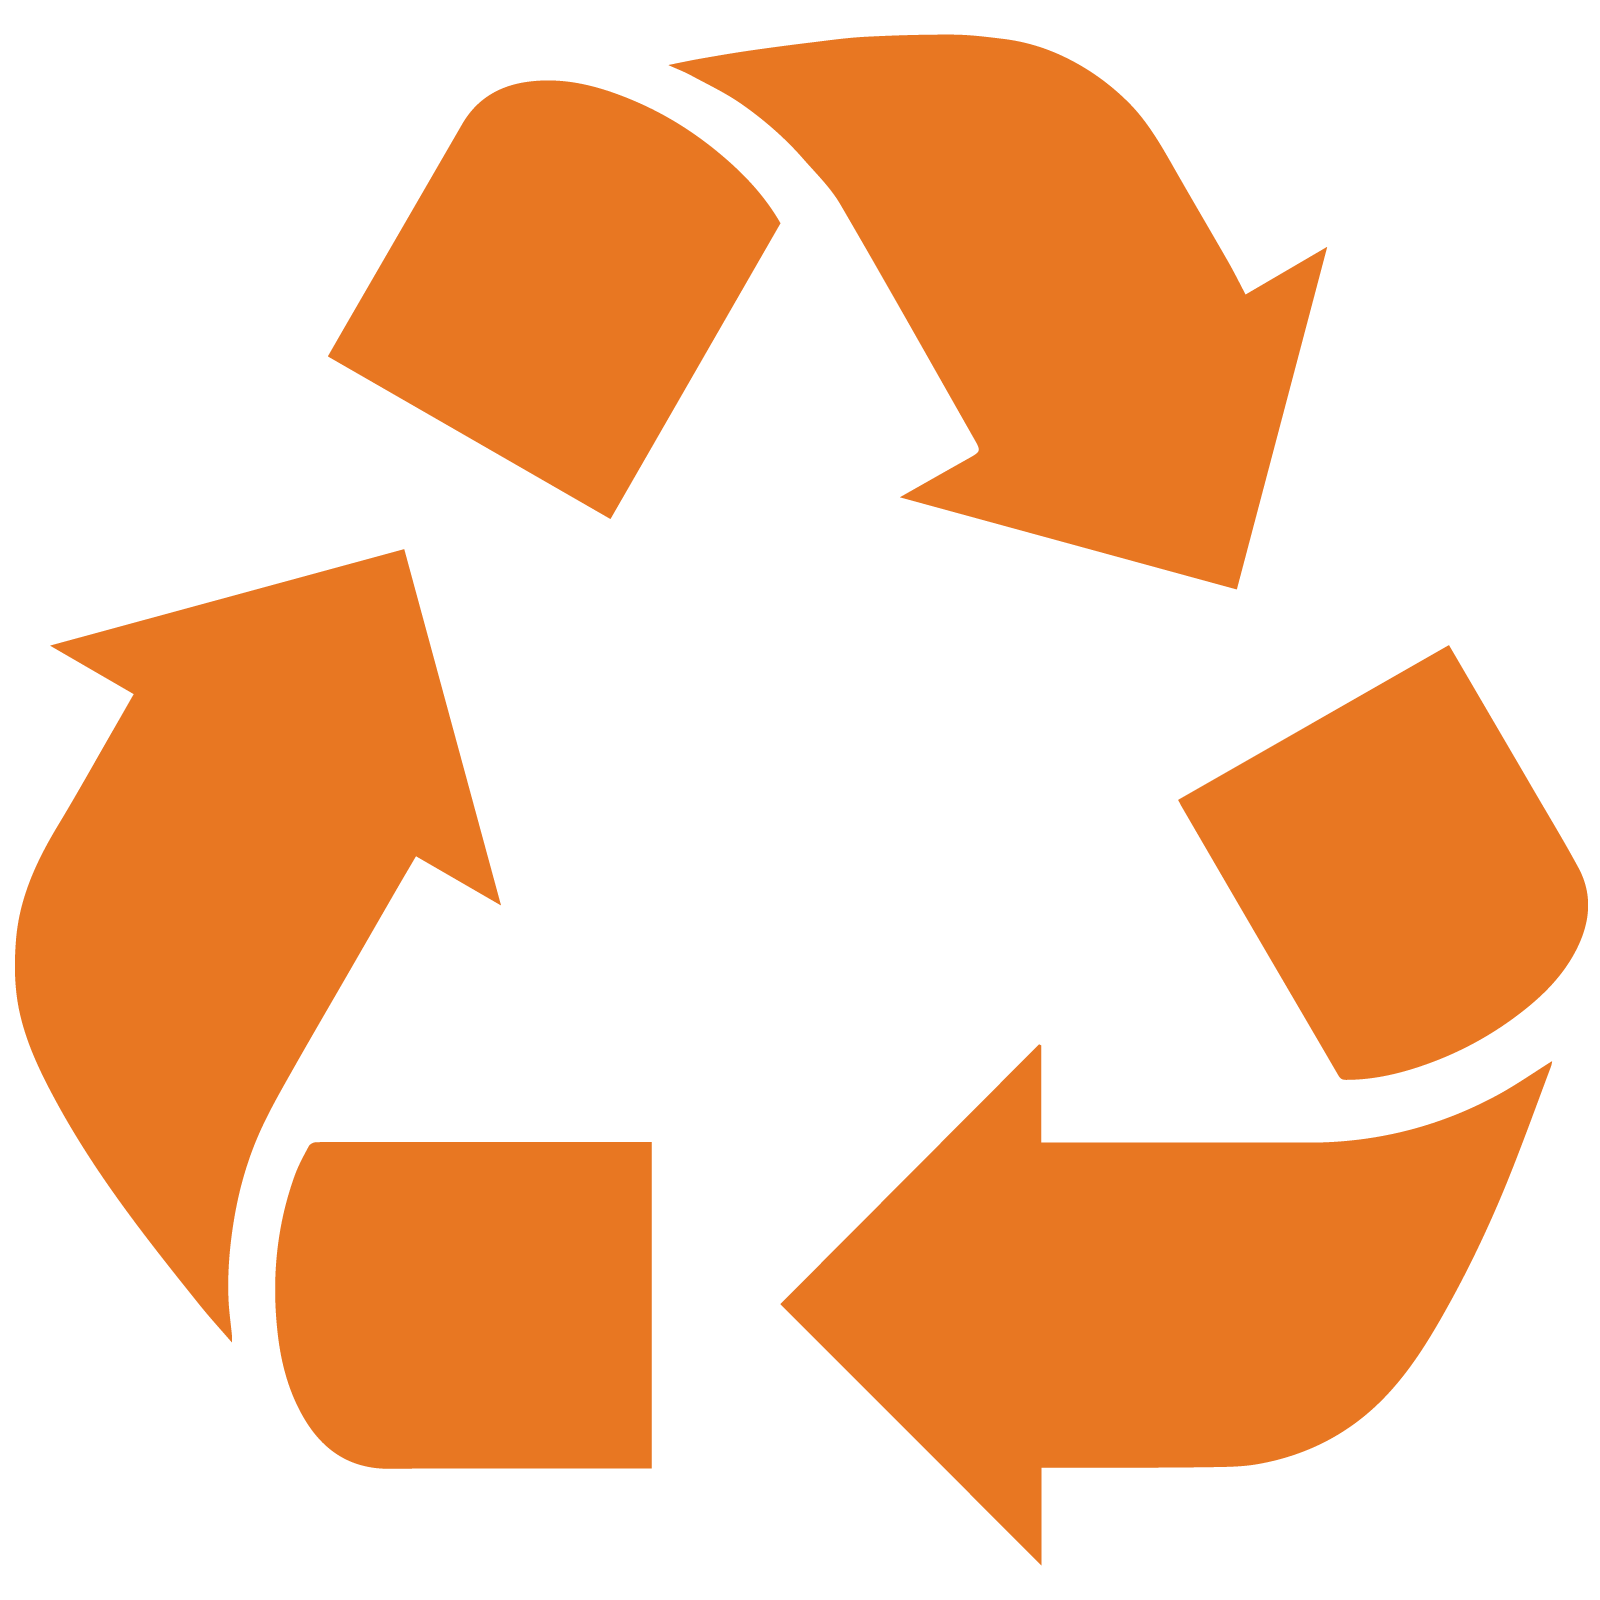 Orange icon of rounded bent arrows forming almost a triangle in the symbol for recycling